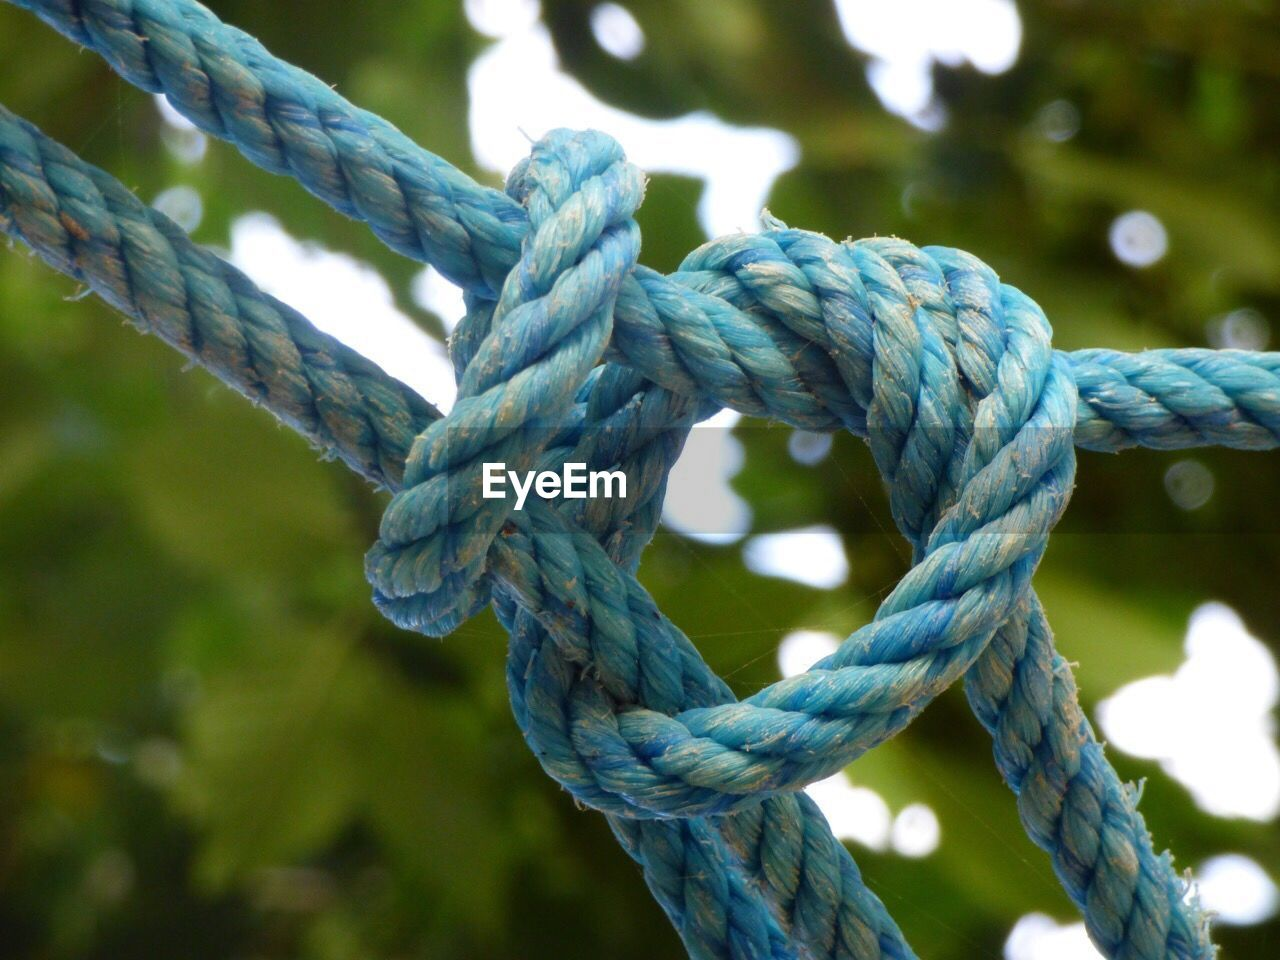 strength, rope, close-up, focus on foreground, no people, pattern, connection, day, twisted, durability, textured, tied knot, nature, tied up, metal, blue, outdoors, safety, green color, water, tangled, turquoise colored